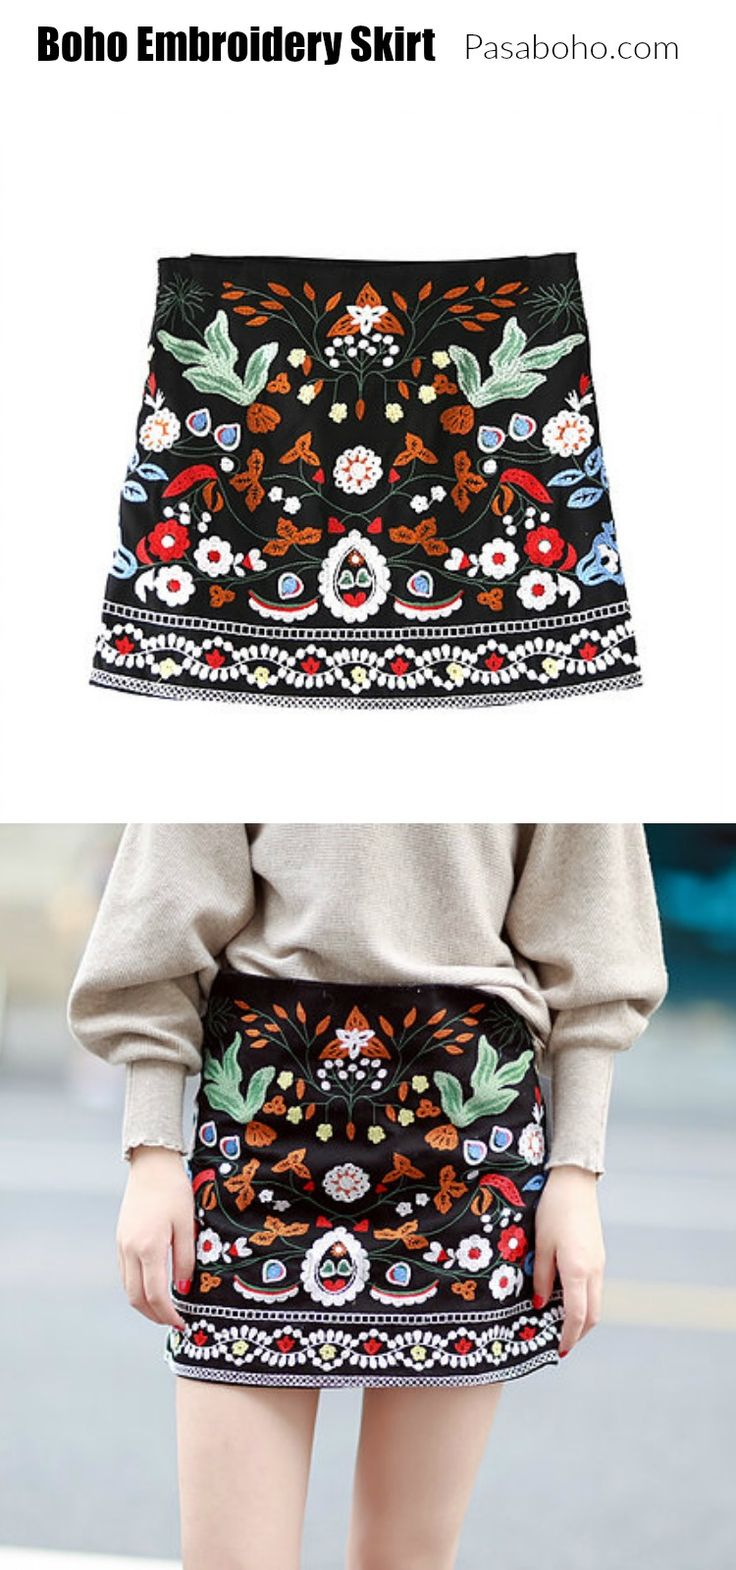 A Boho Embroidery Skirt - $33 is now available at Pasaboho. This skirt exhibit brilliant colours with unique embroidered patterns.